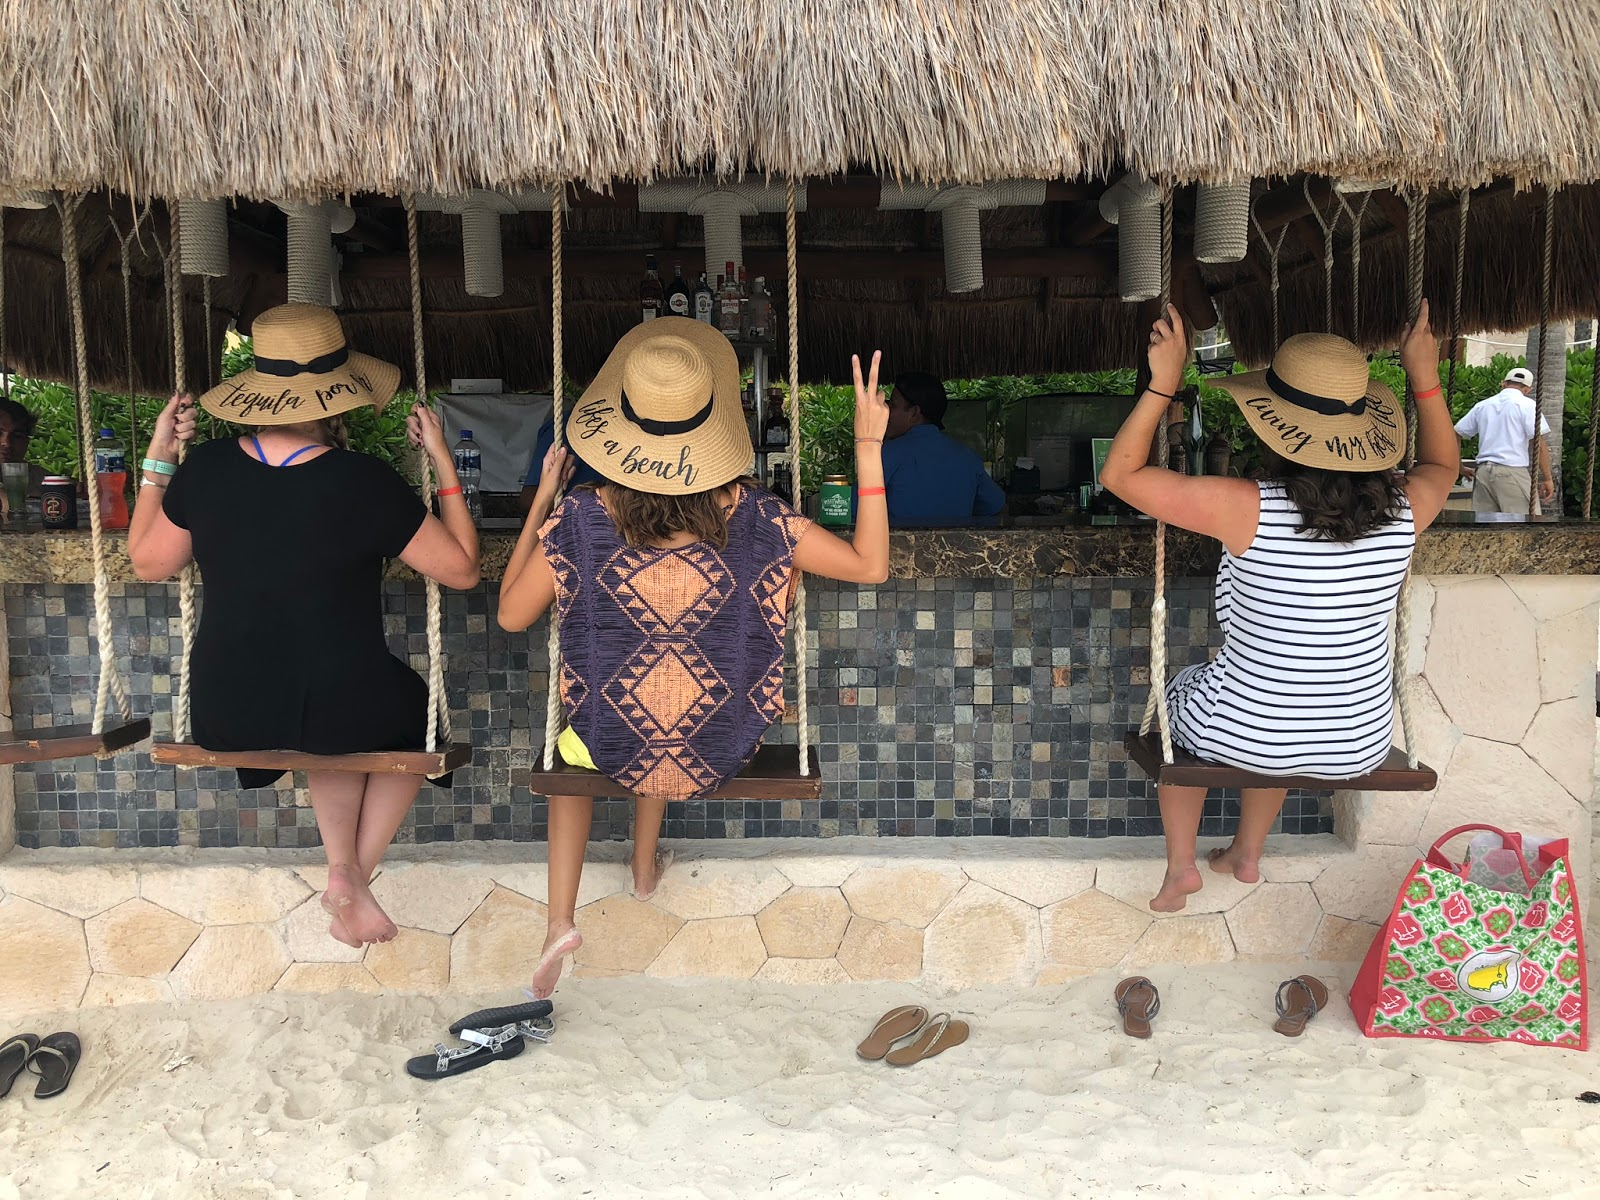 three women sitting at a bar with swings instead of barstools, their backs are to the camera and they're wearing the matching floppy beach hats